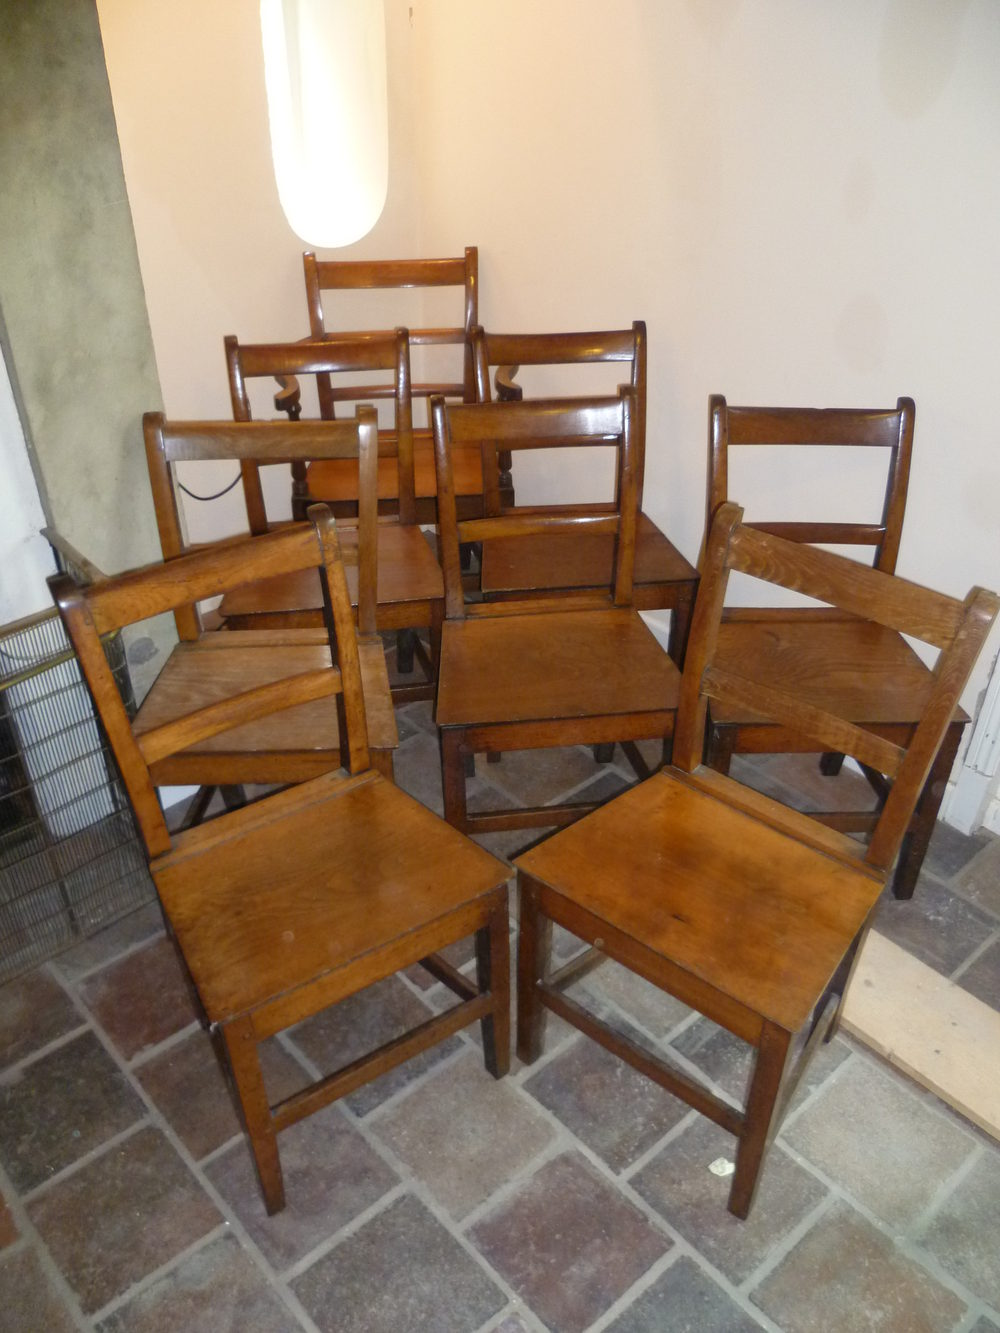 ... Country Chairs Antique Farmhouse Chairs - A Set Of 8 Oak Country Chairs - Antiques Atlas